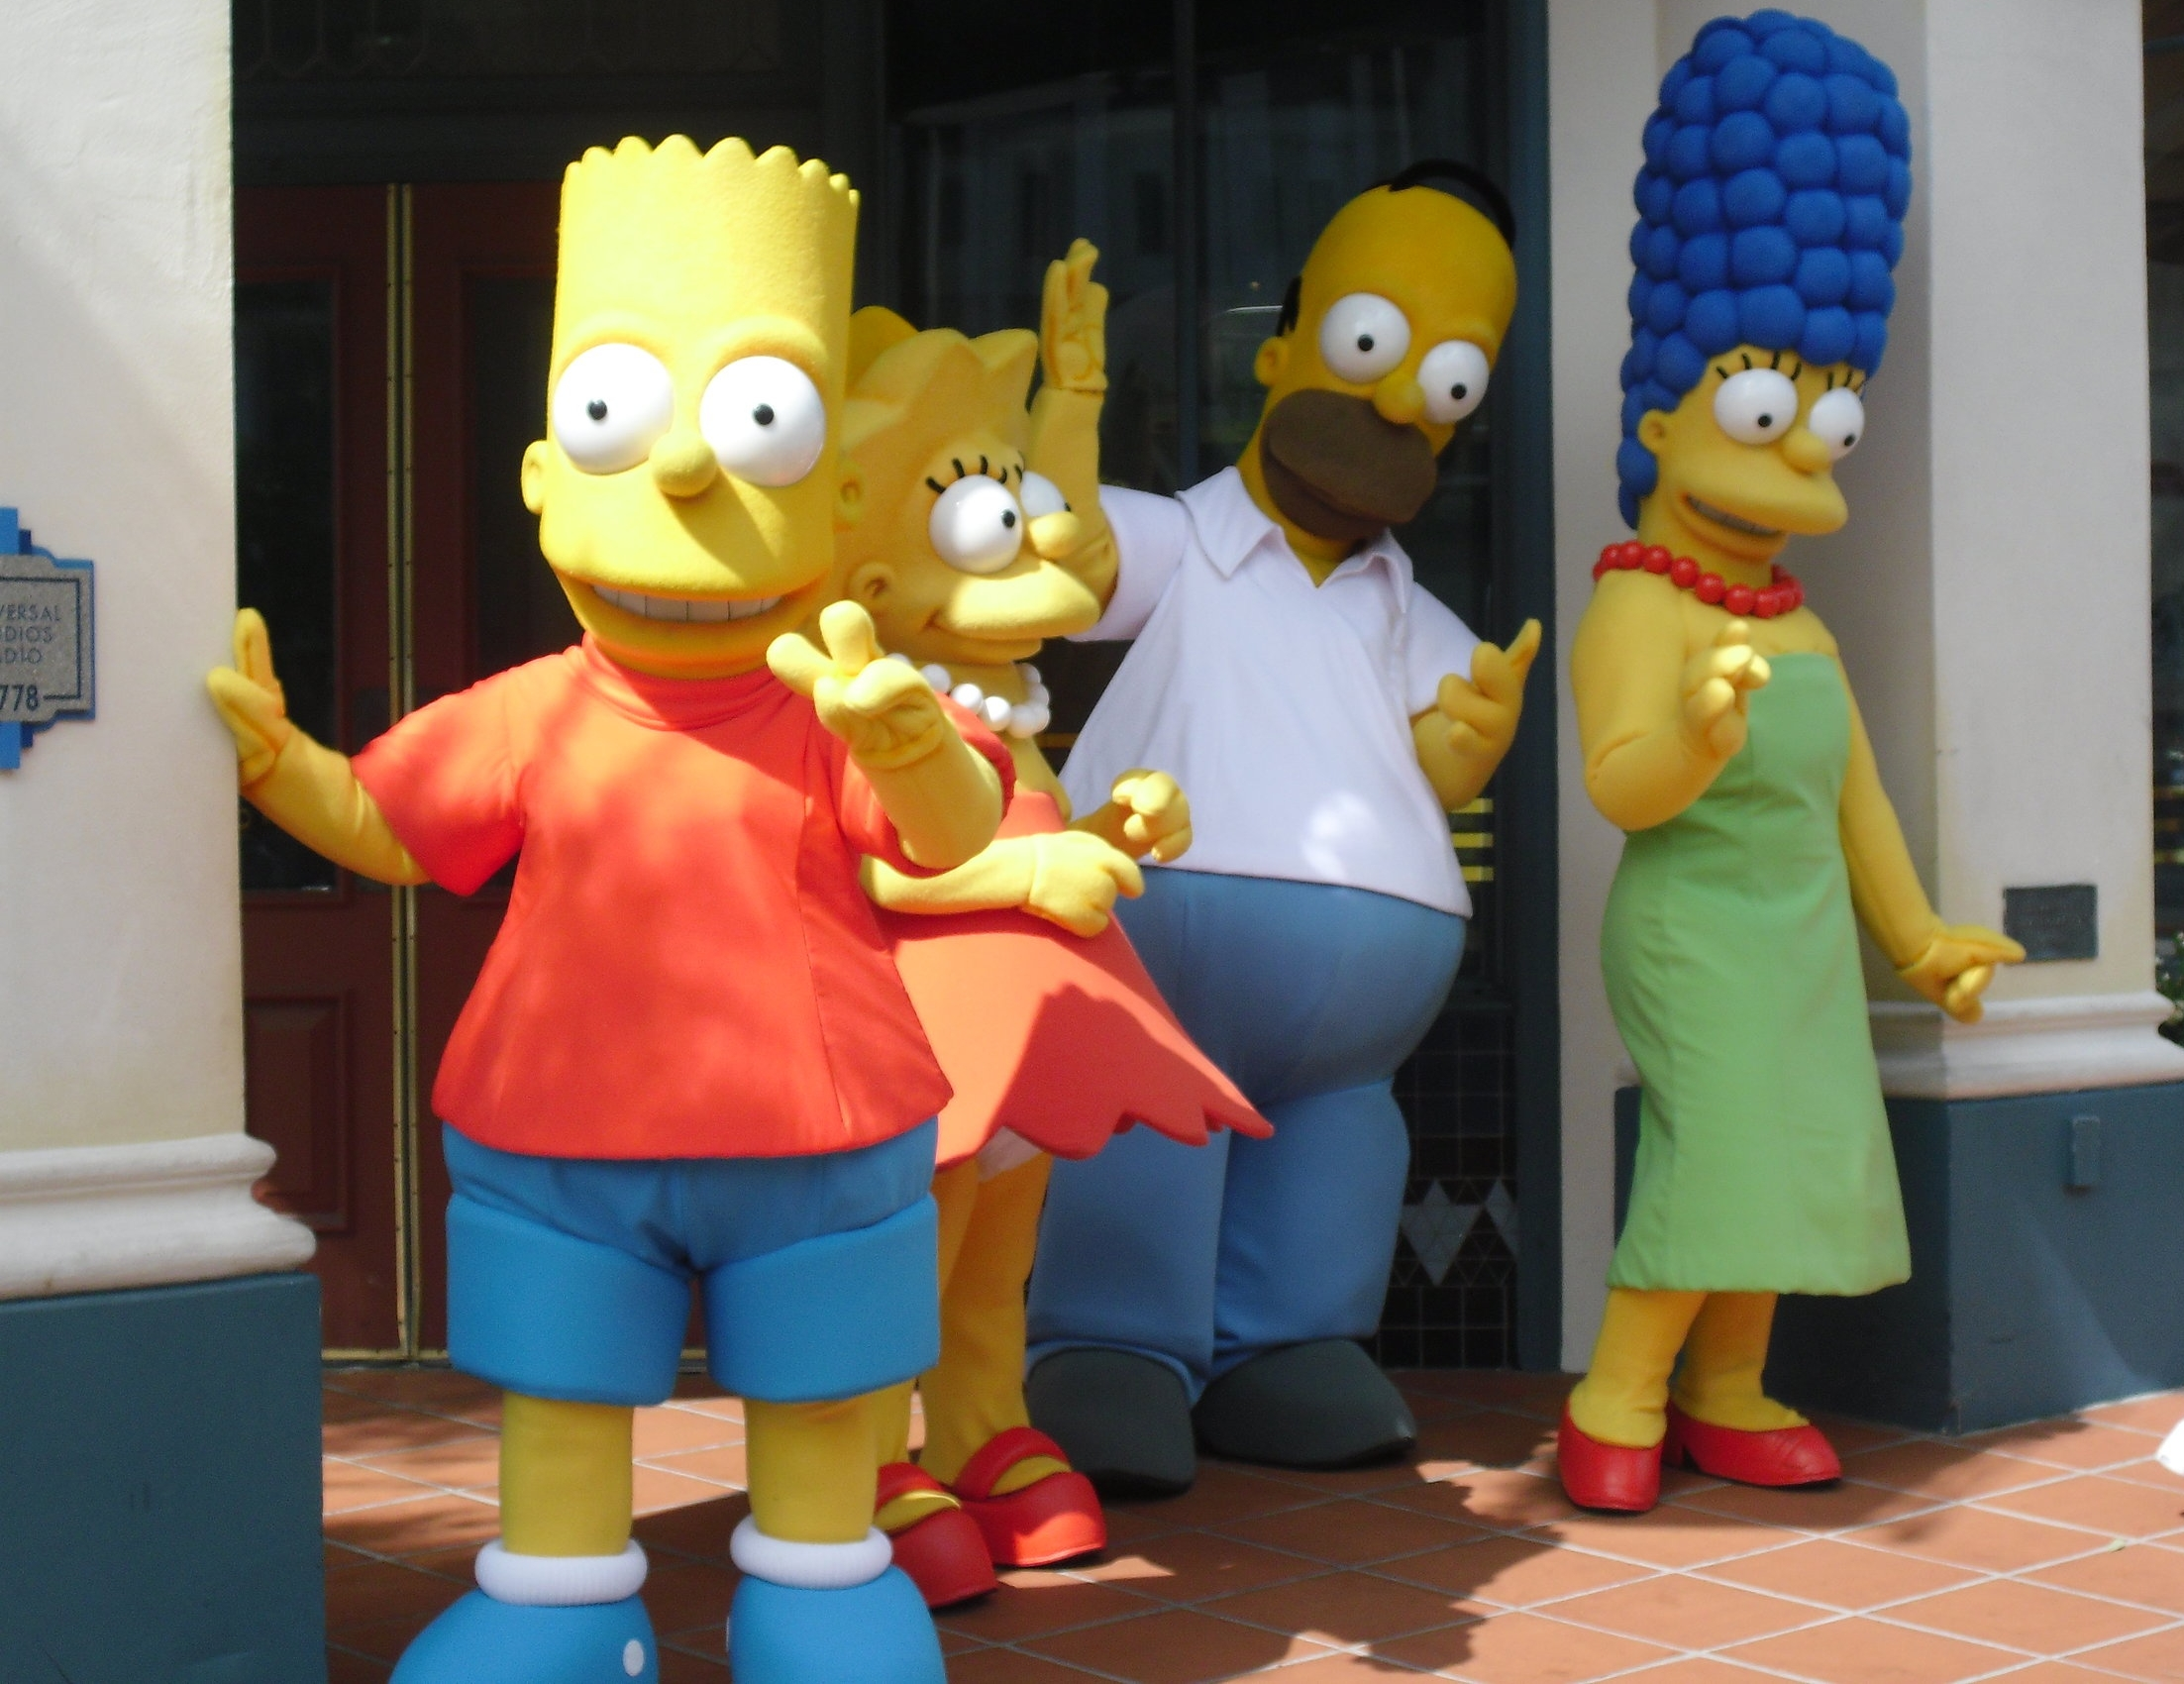 The Simpsons characters at Universal Studios, Florida